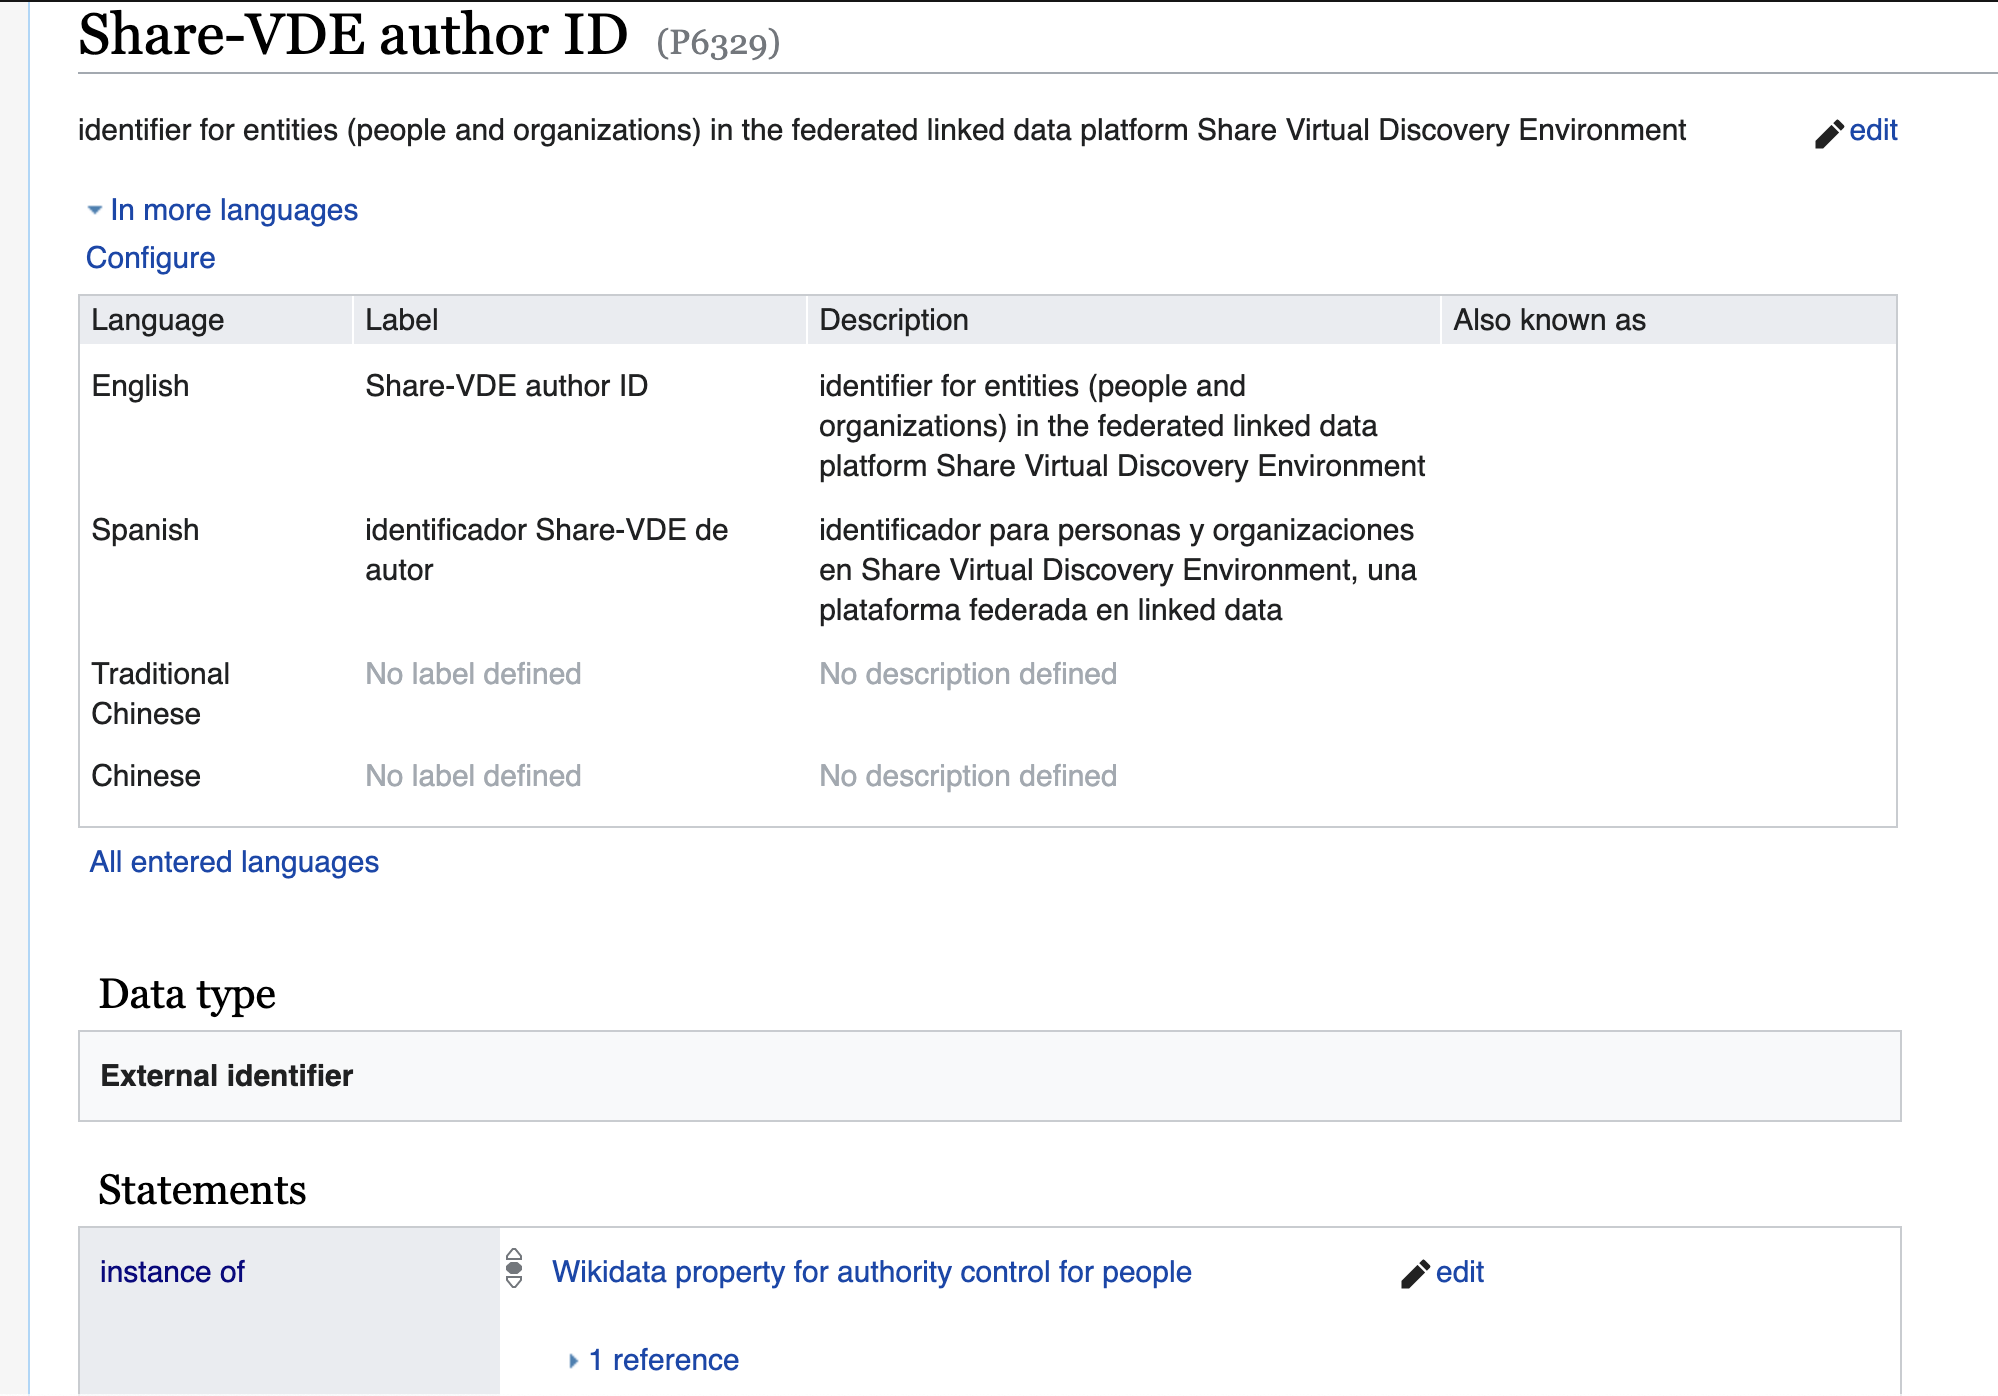 Figure 12. Share-VDE Author ID property in Wikidata. Source: Wikidata